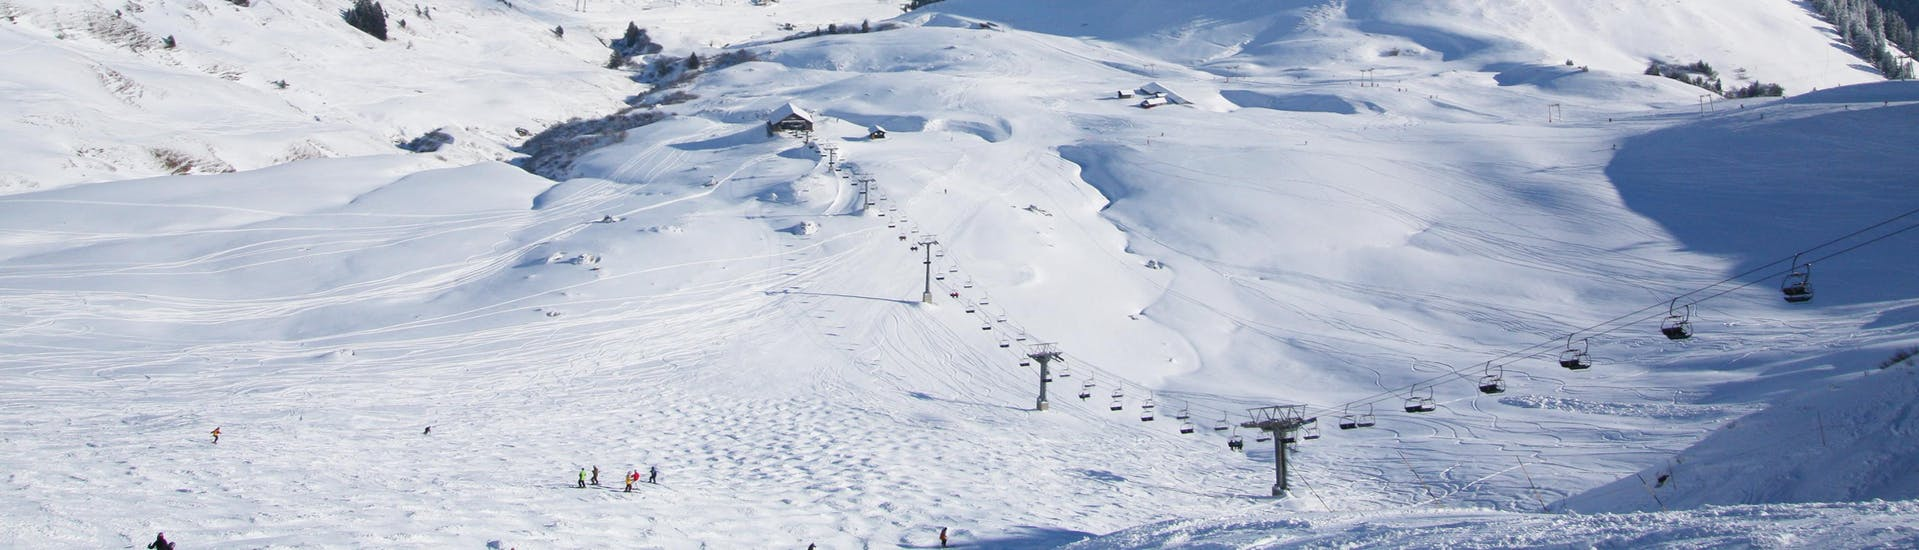 A view of the snowy slopes of the Swiss ski resort Les Crosets-Champoussin, where local ski schools offer a wide range of ski lessons to those who want to learn to ski.